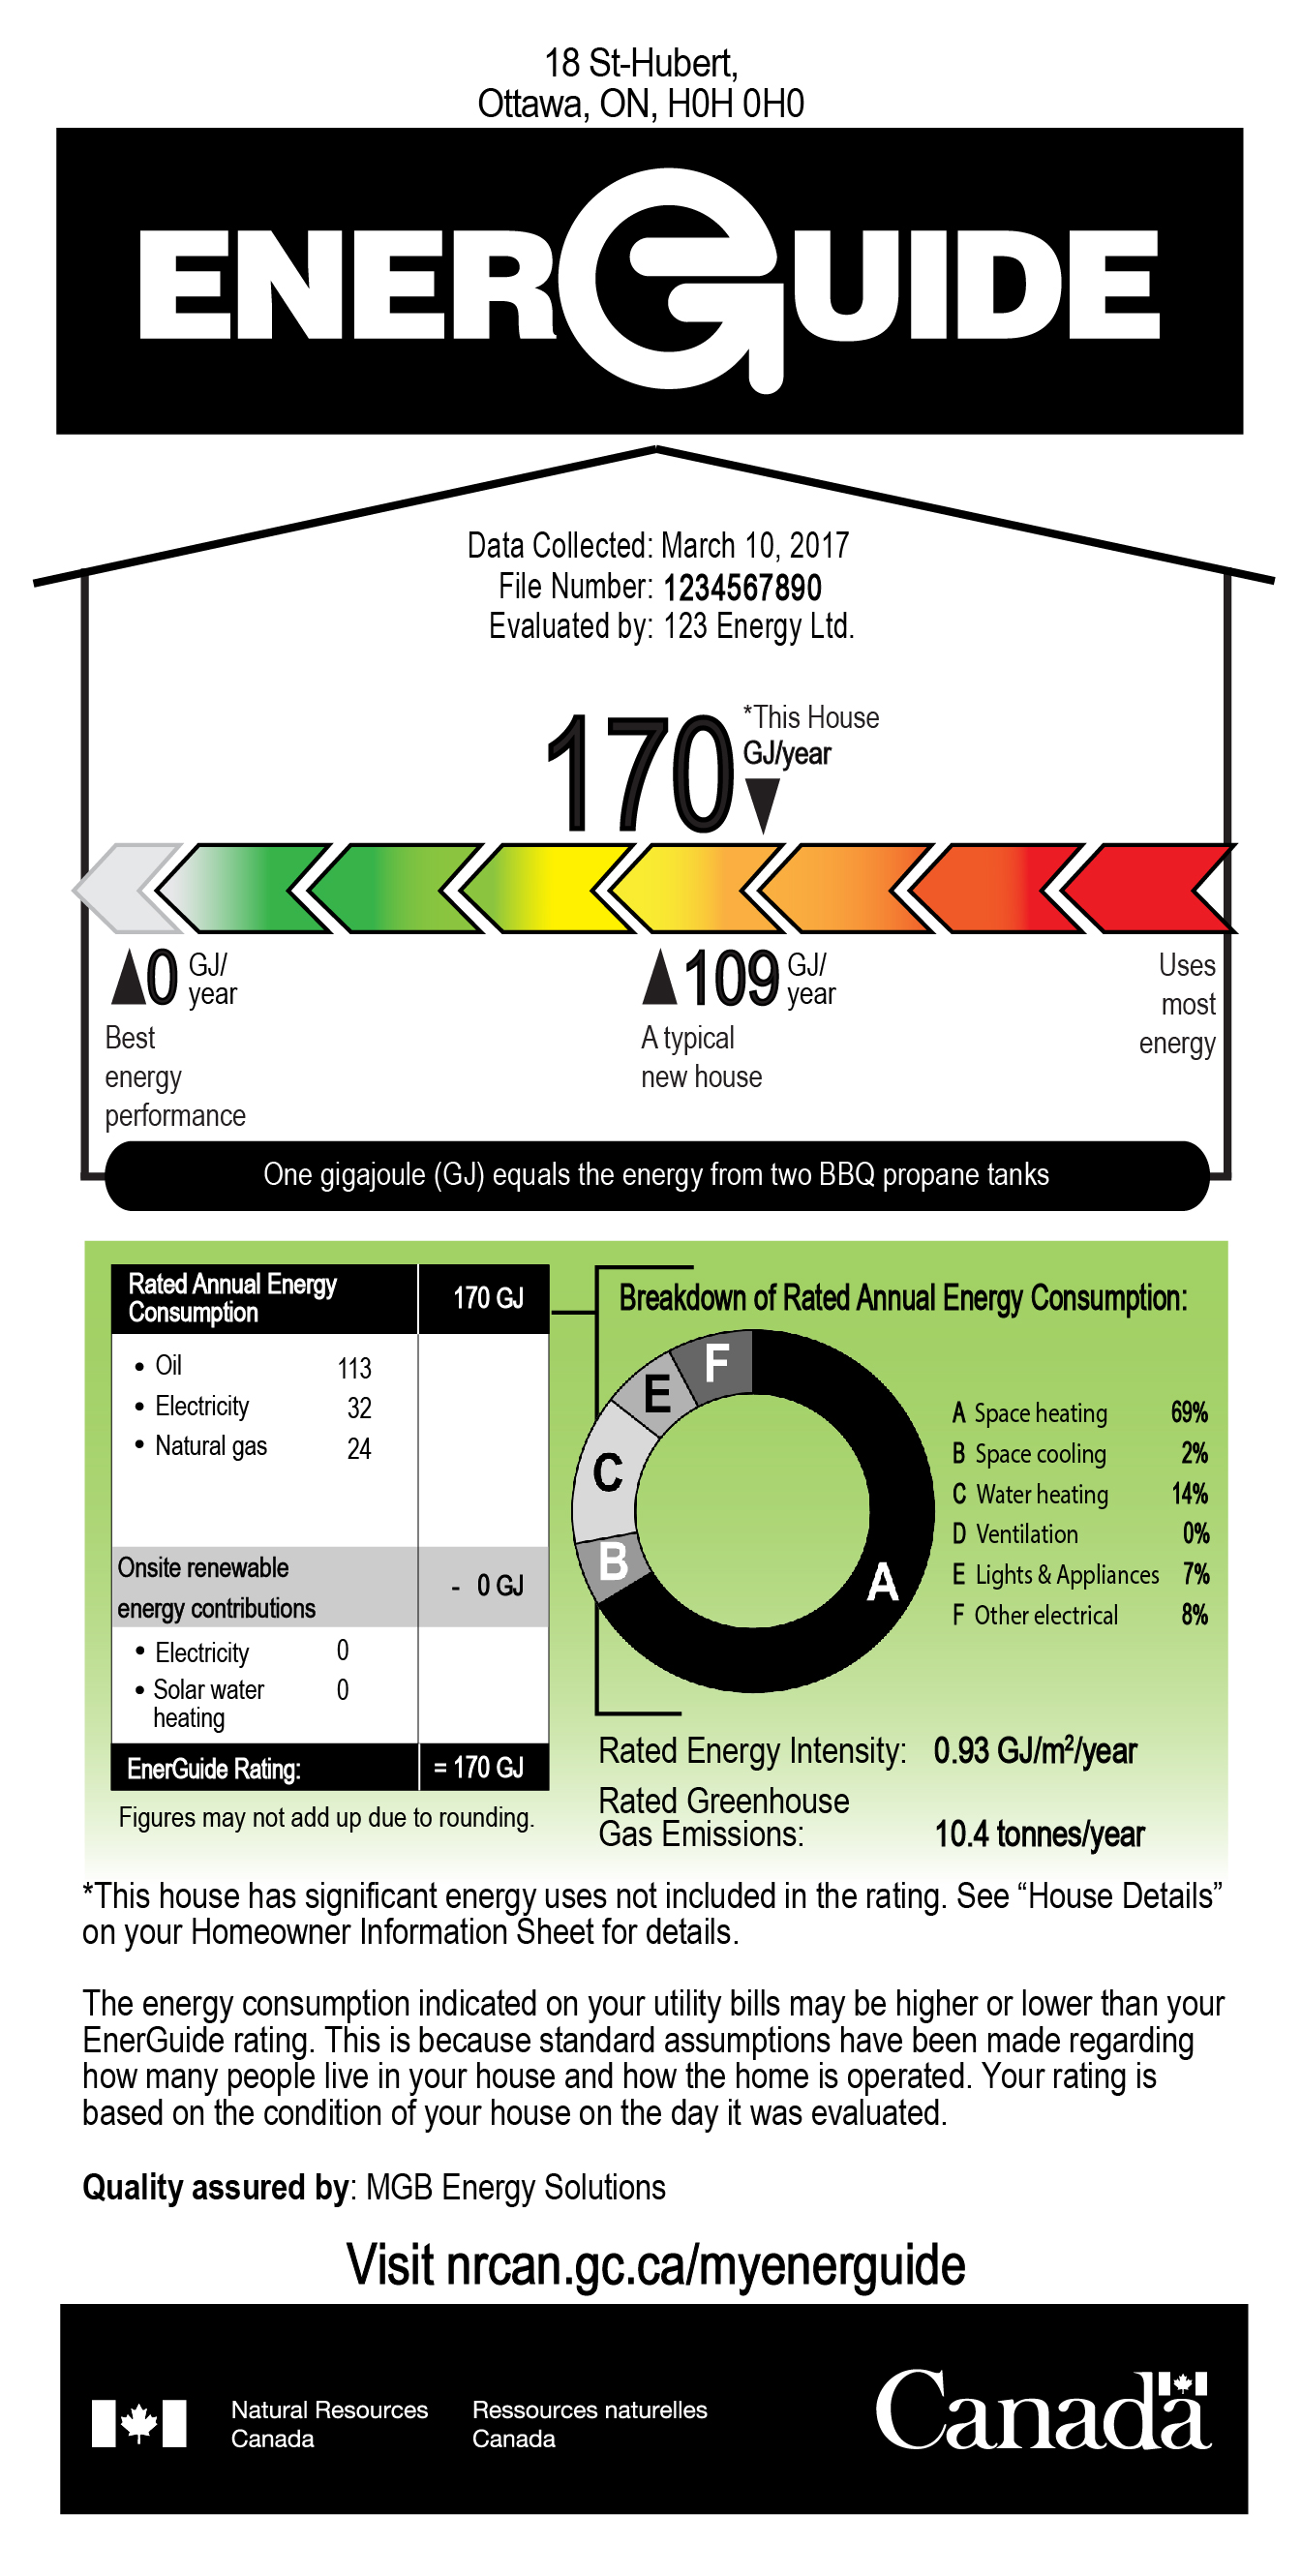 Energuide Label from Canada